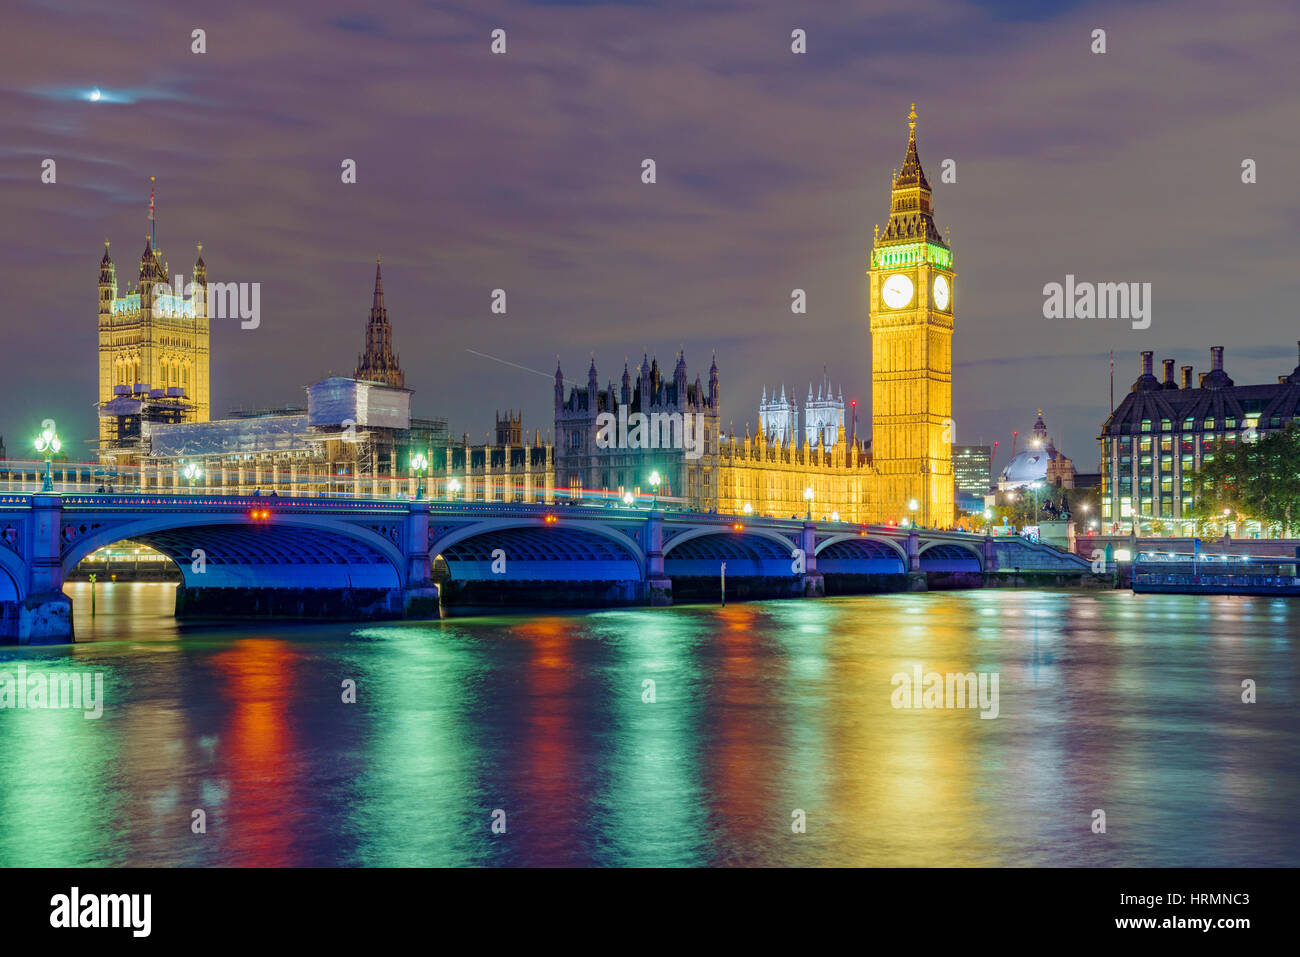 Nigh view of River Thames and the Houses of Parliament - Stock Image